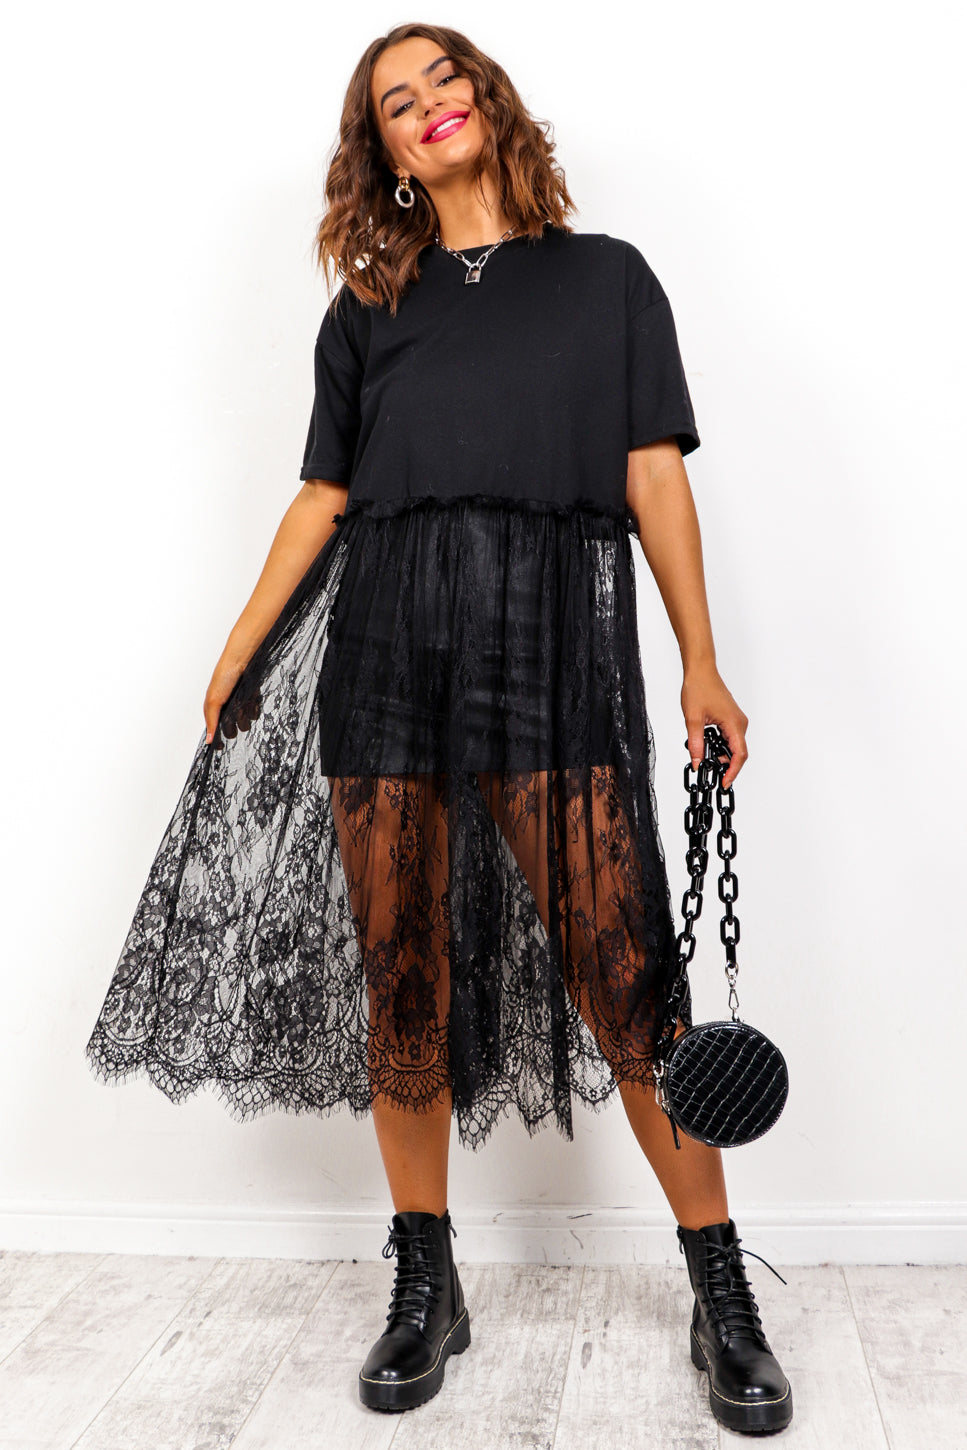 Never Too Lace - Black Lace Hem Top